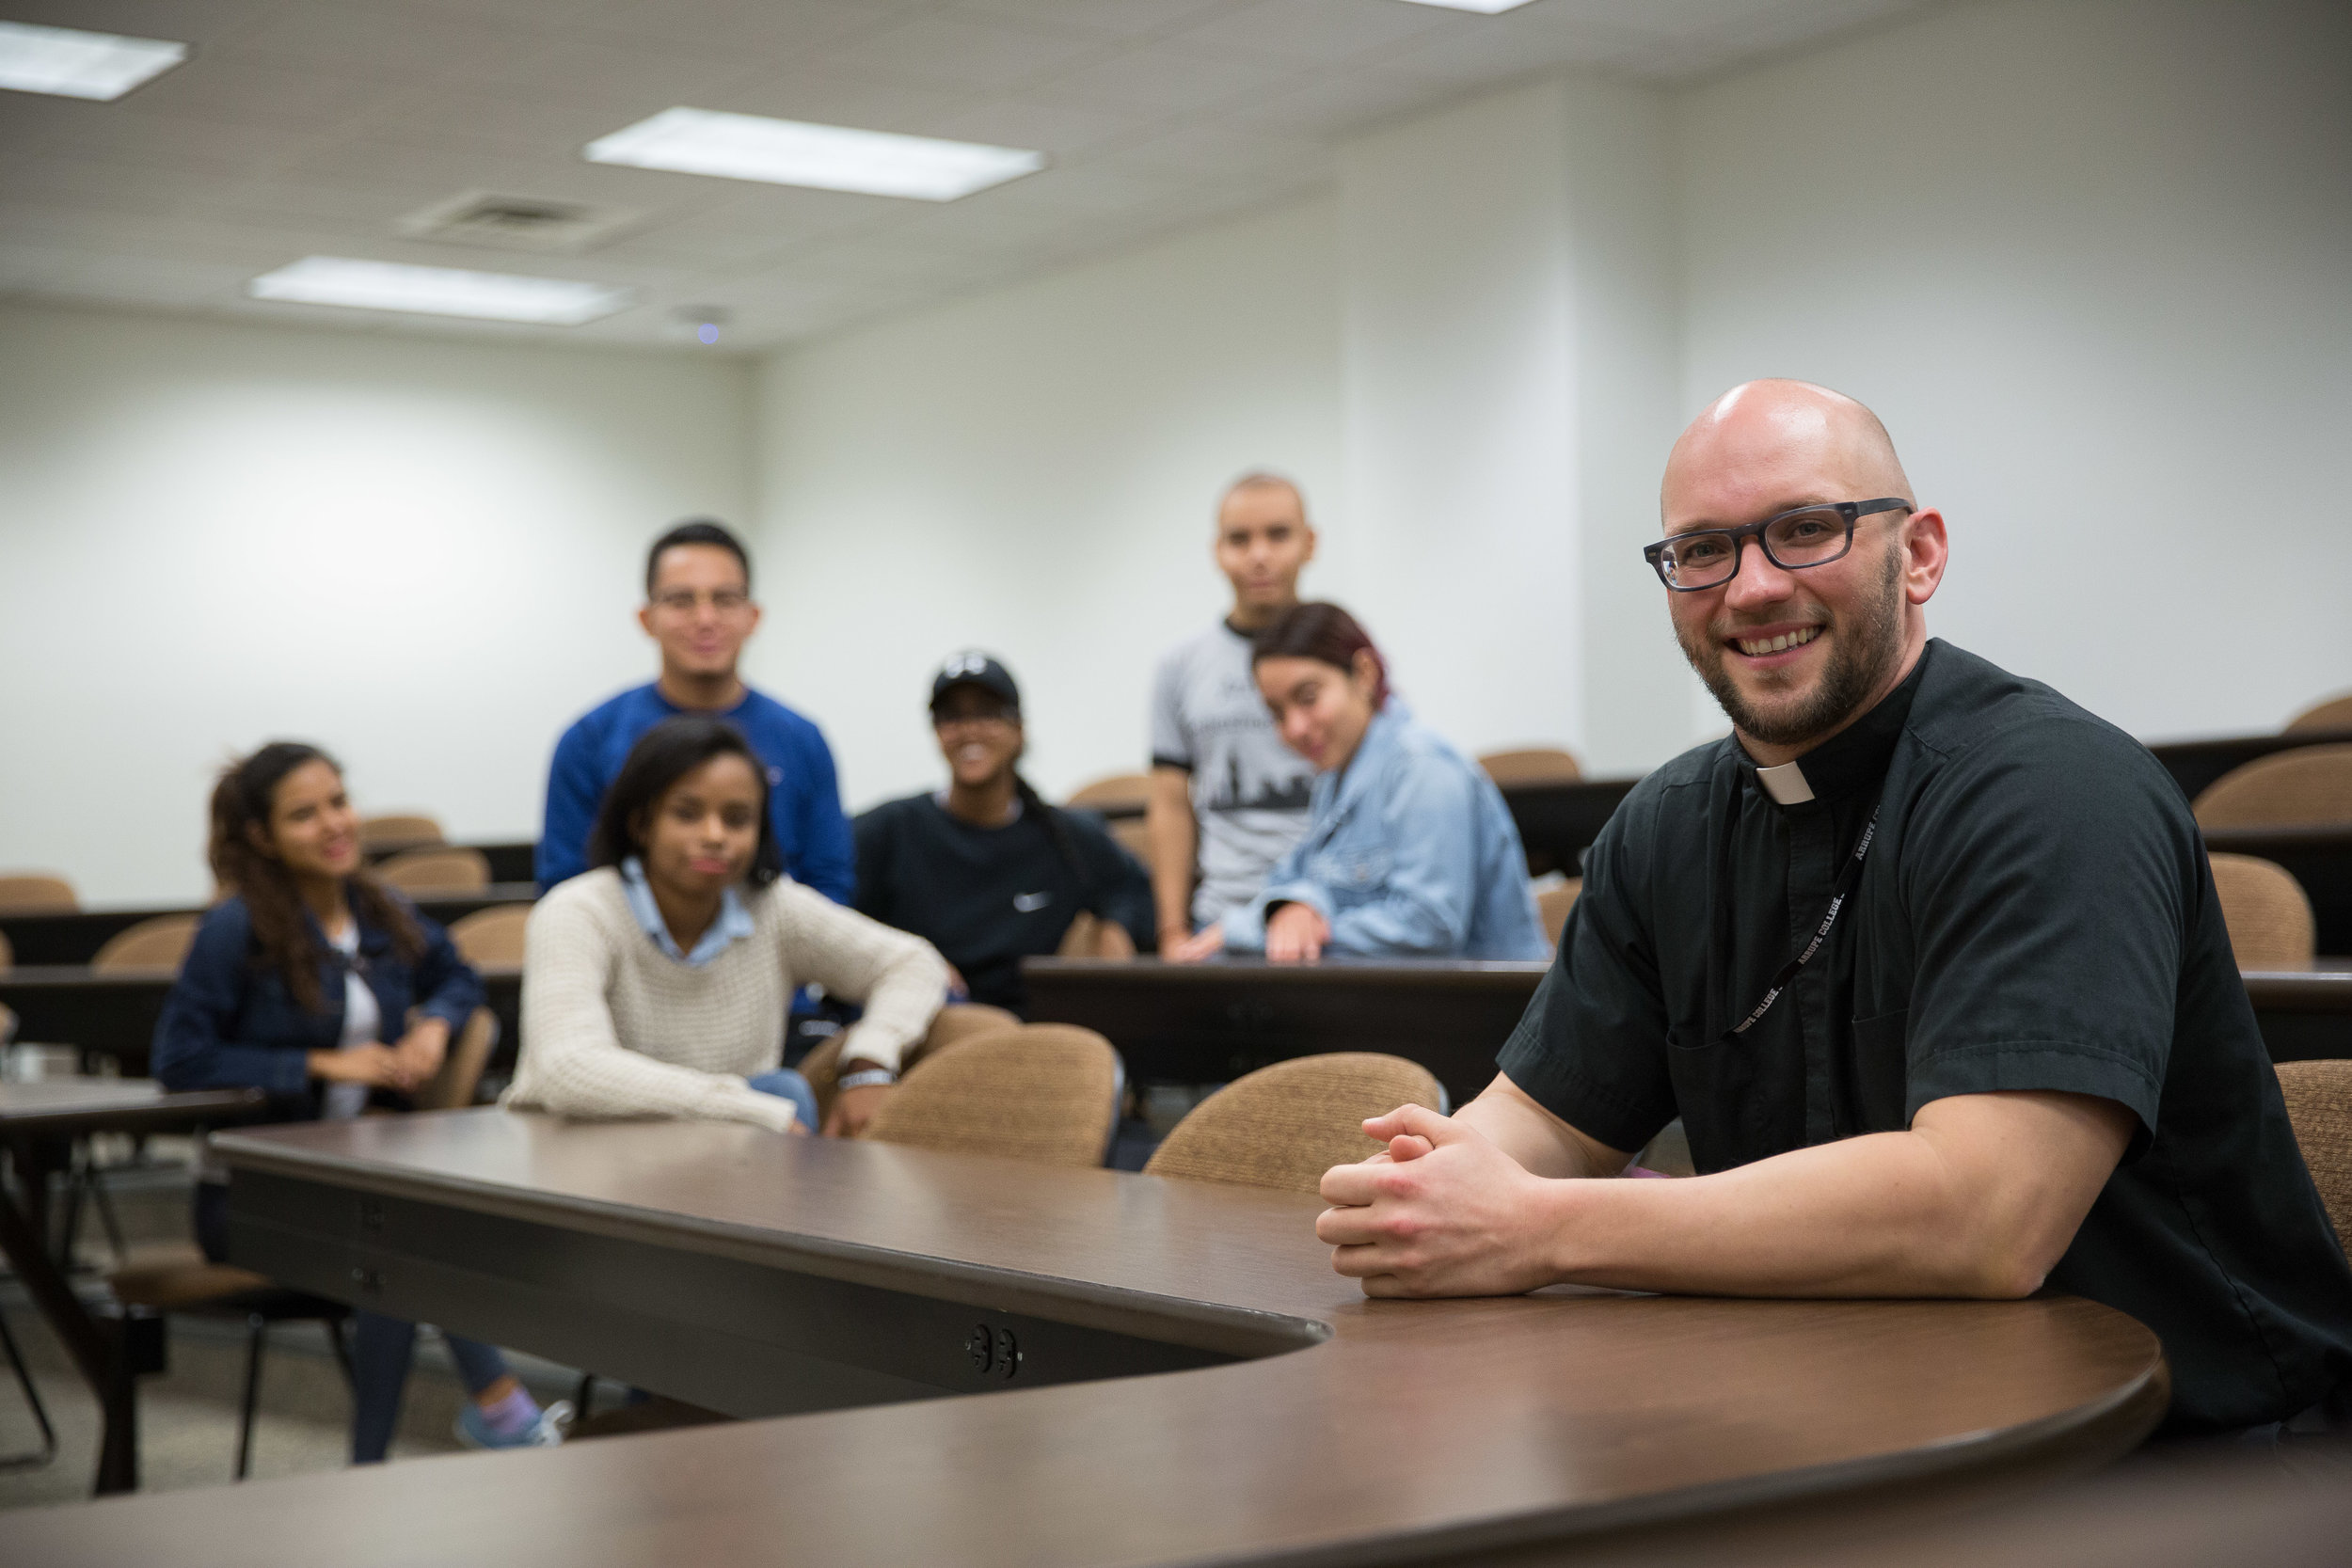 Eric Immel, S.J., with members of the student government at Arrupe College in Chicago, IL (photo by Midwest Jesuits)